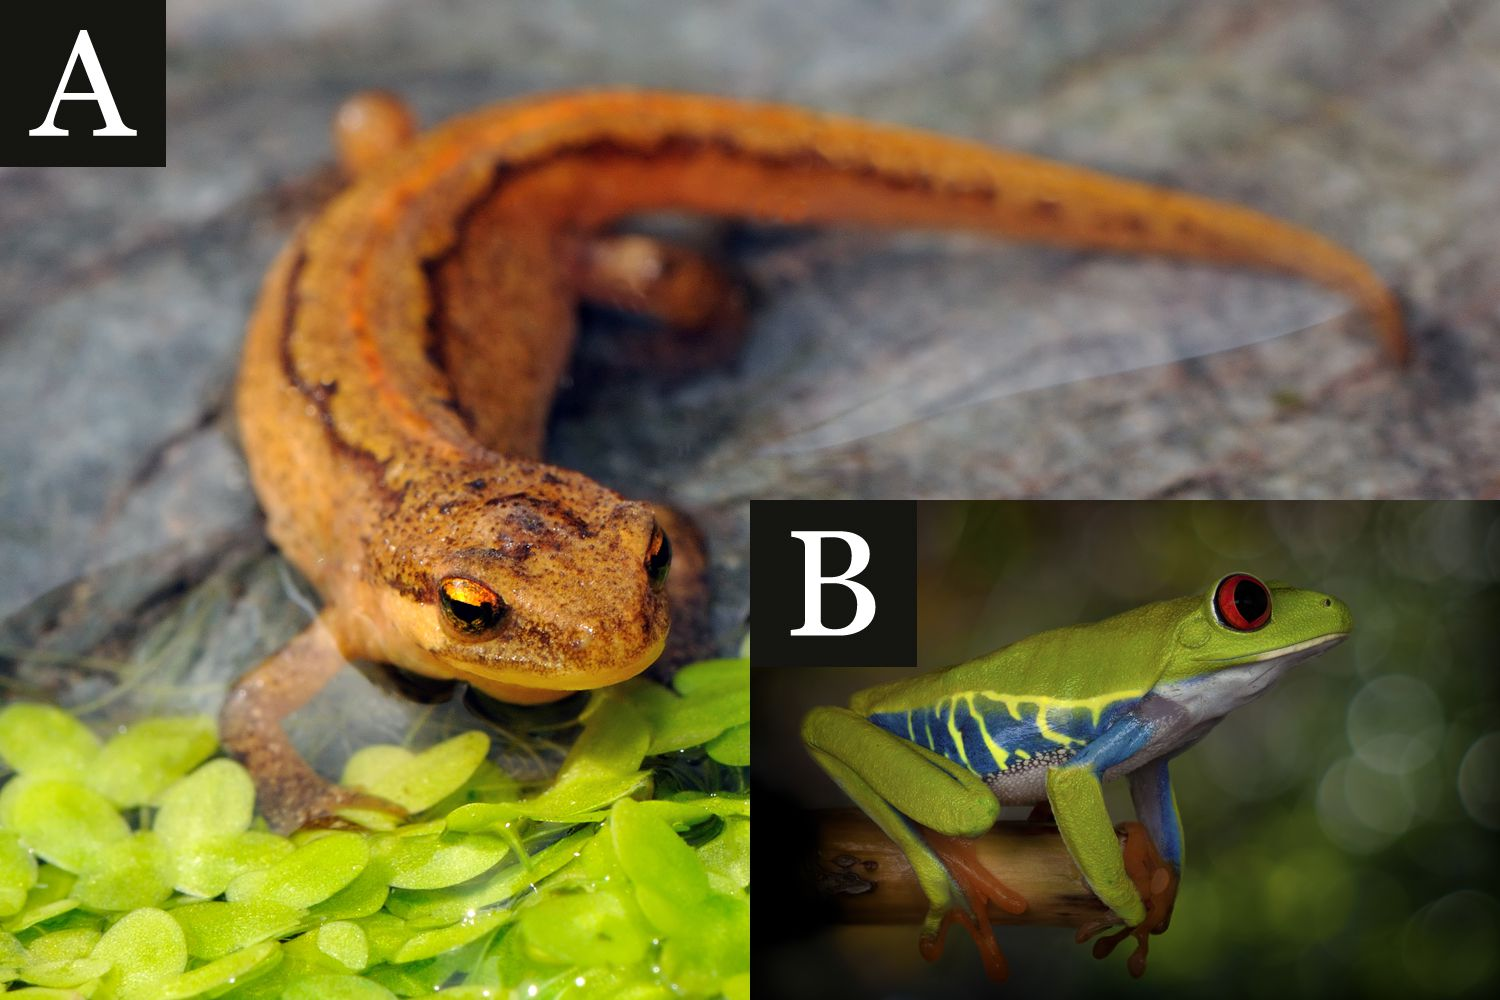 Amphibian: Tail or No Tail?